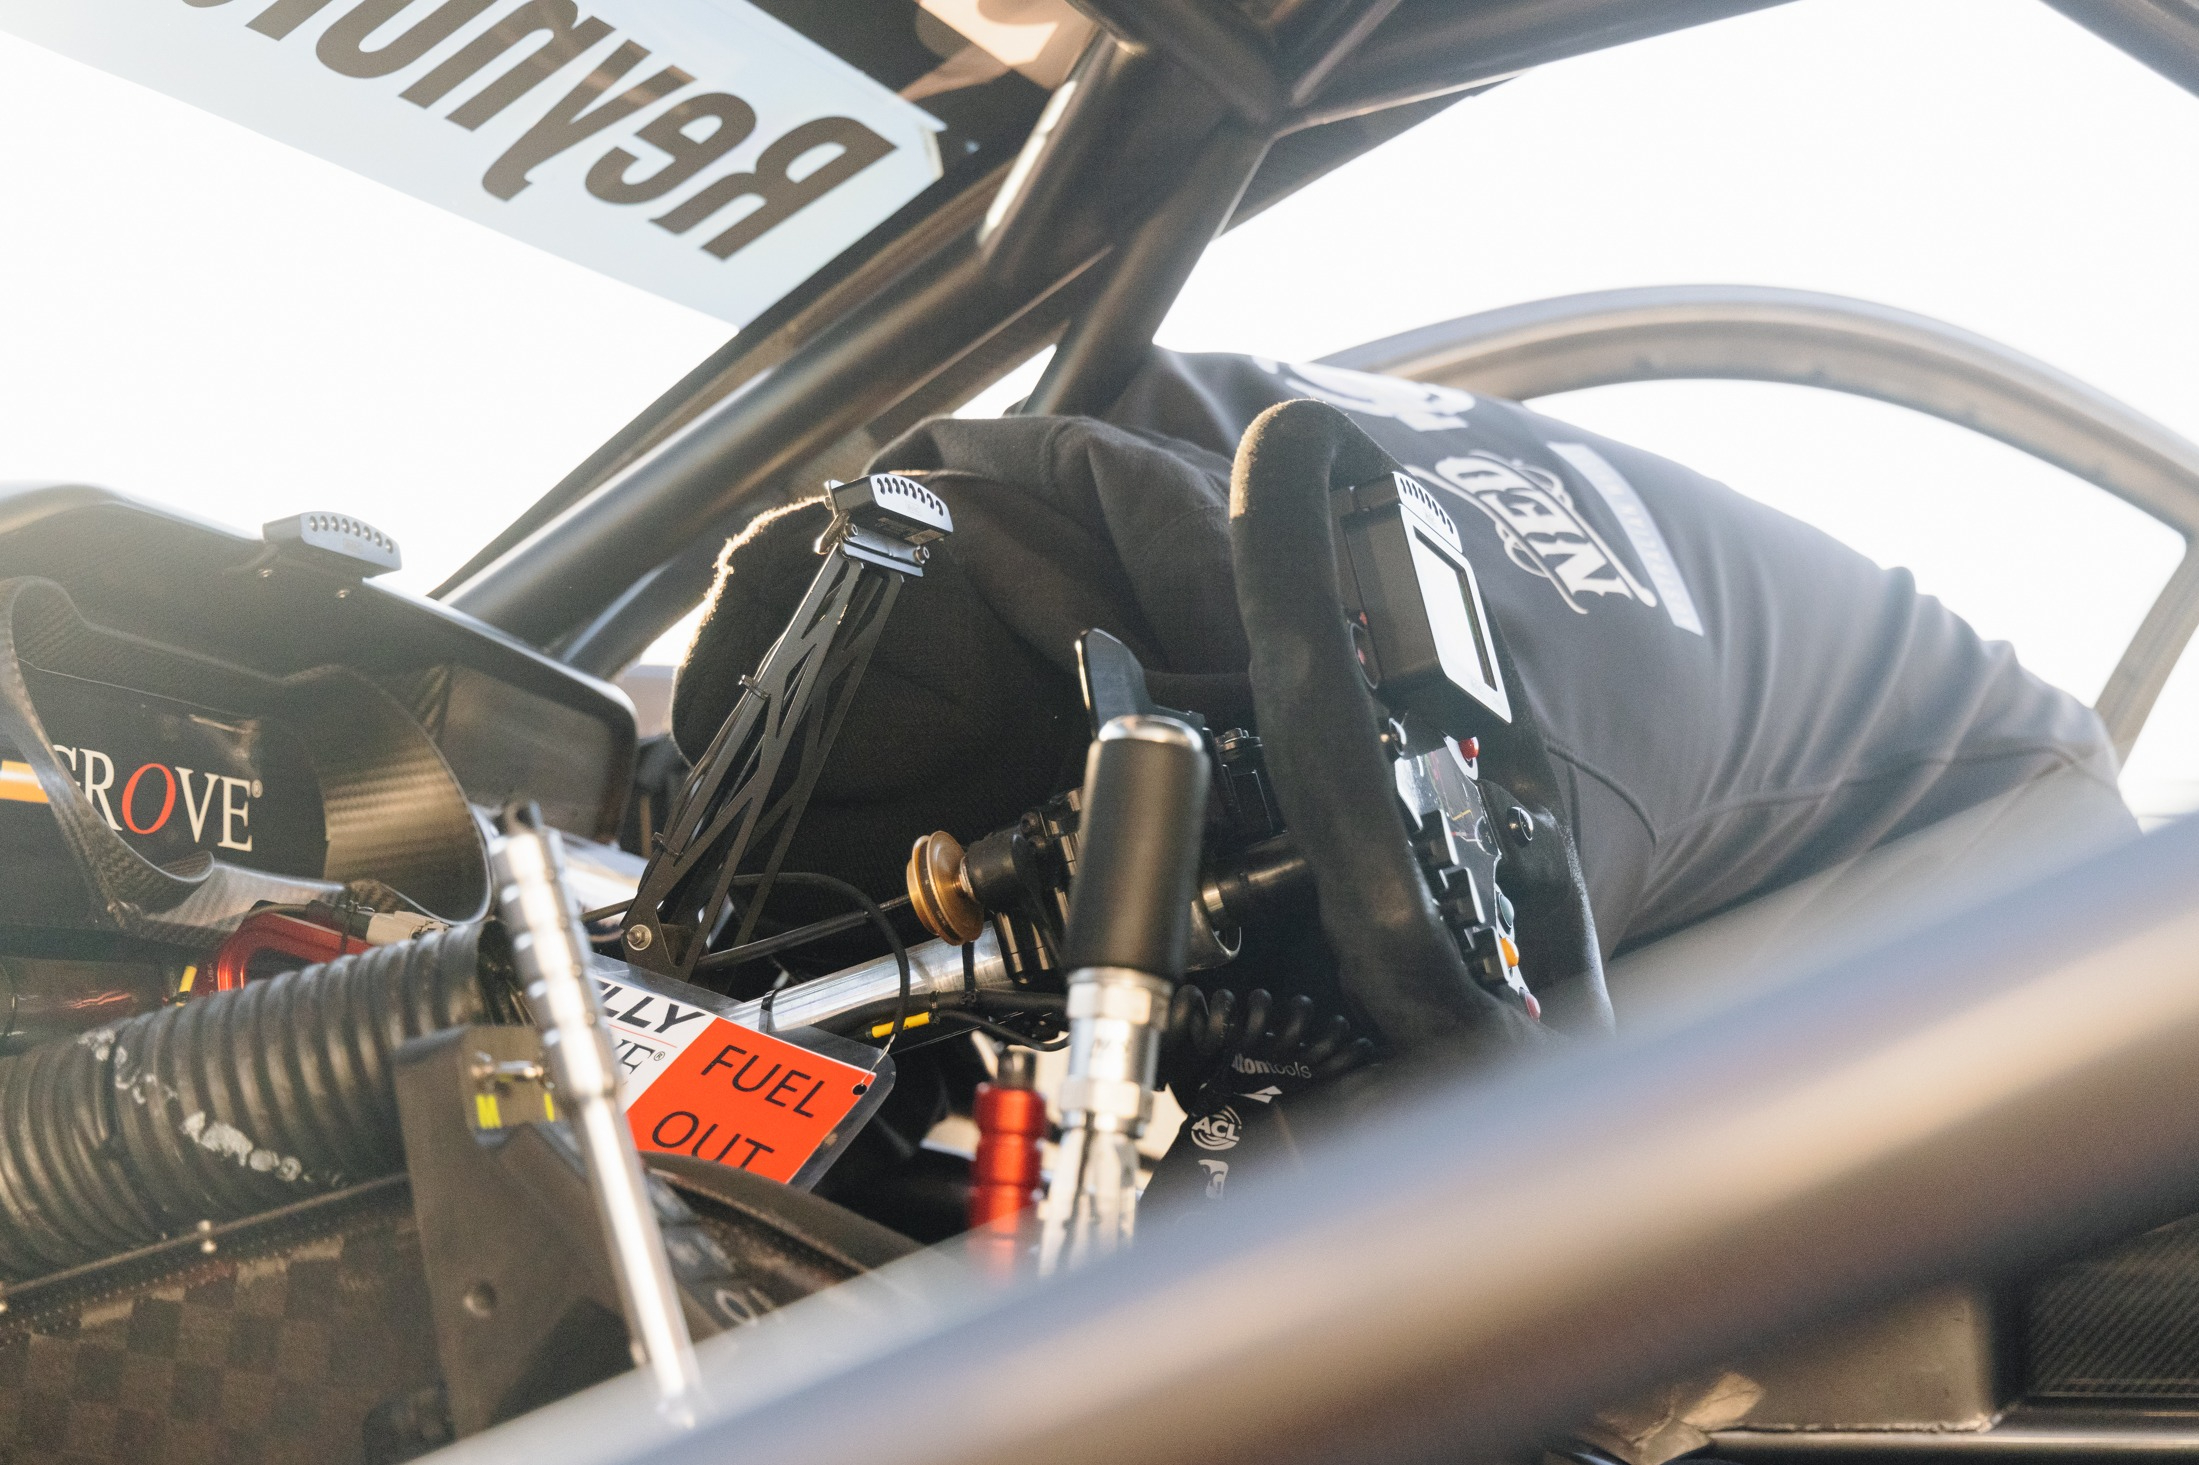 Cockpit of David Reynolds' Kelly Grove Racing Ford Mustang